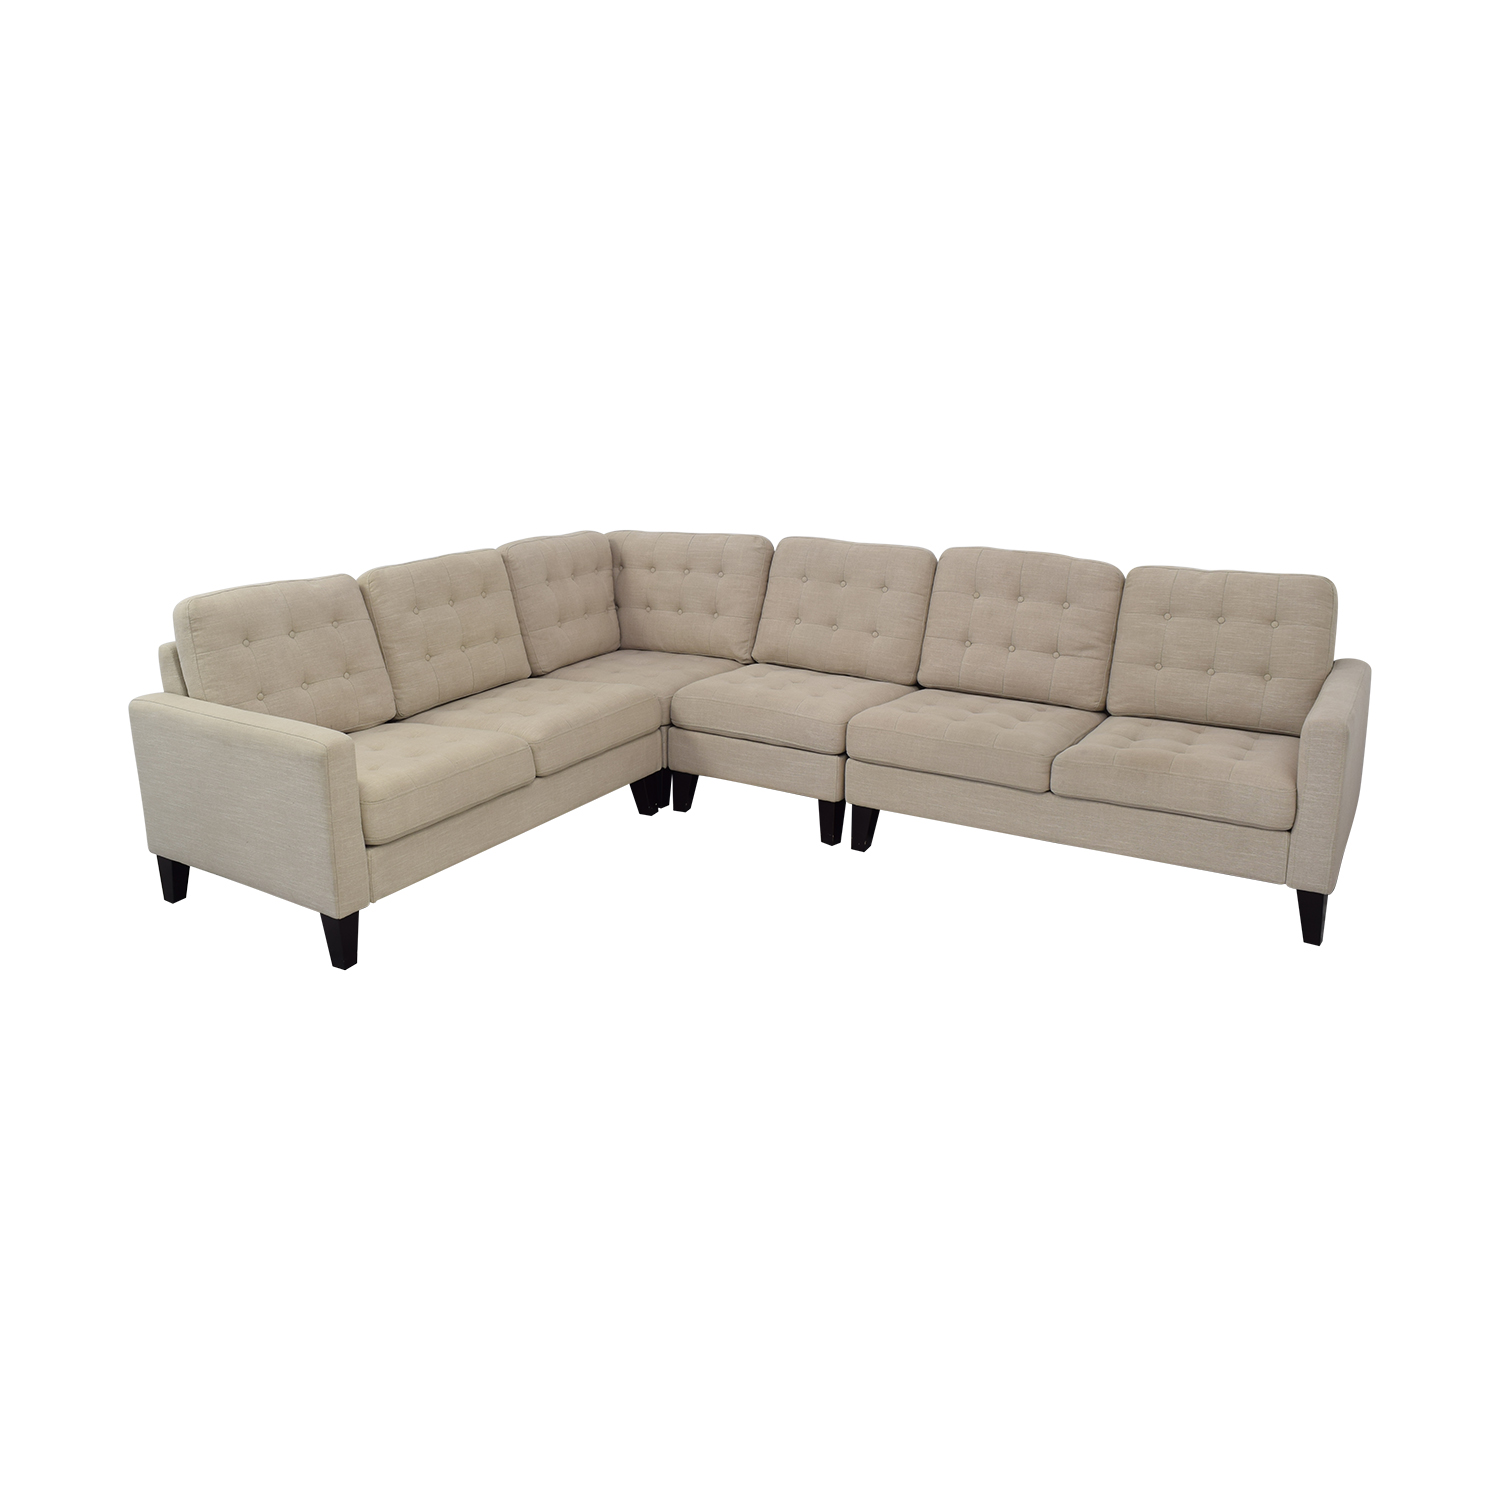 Pier 1 Pier 1 Nyle L-Shaped Sectional Sofa discount